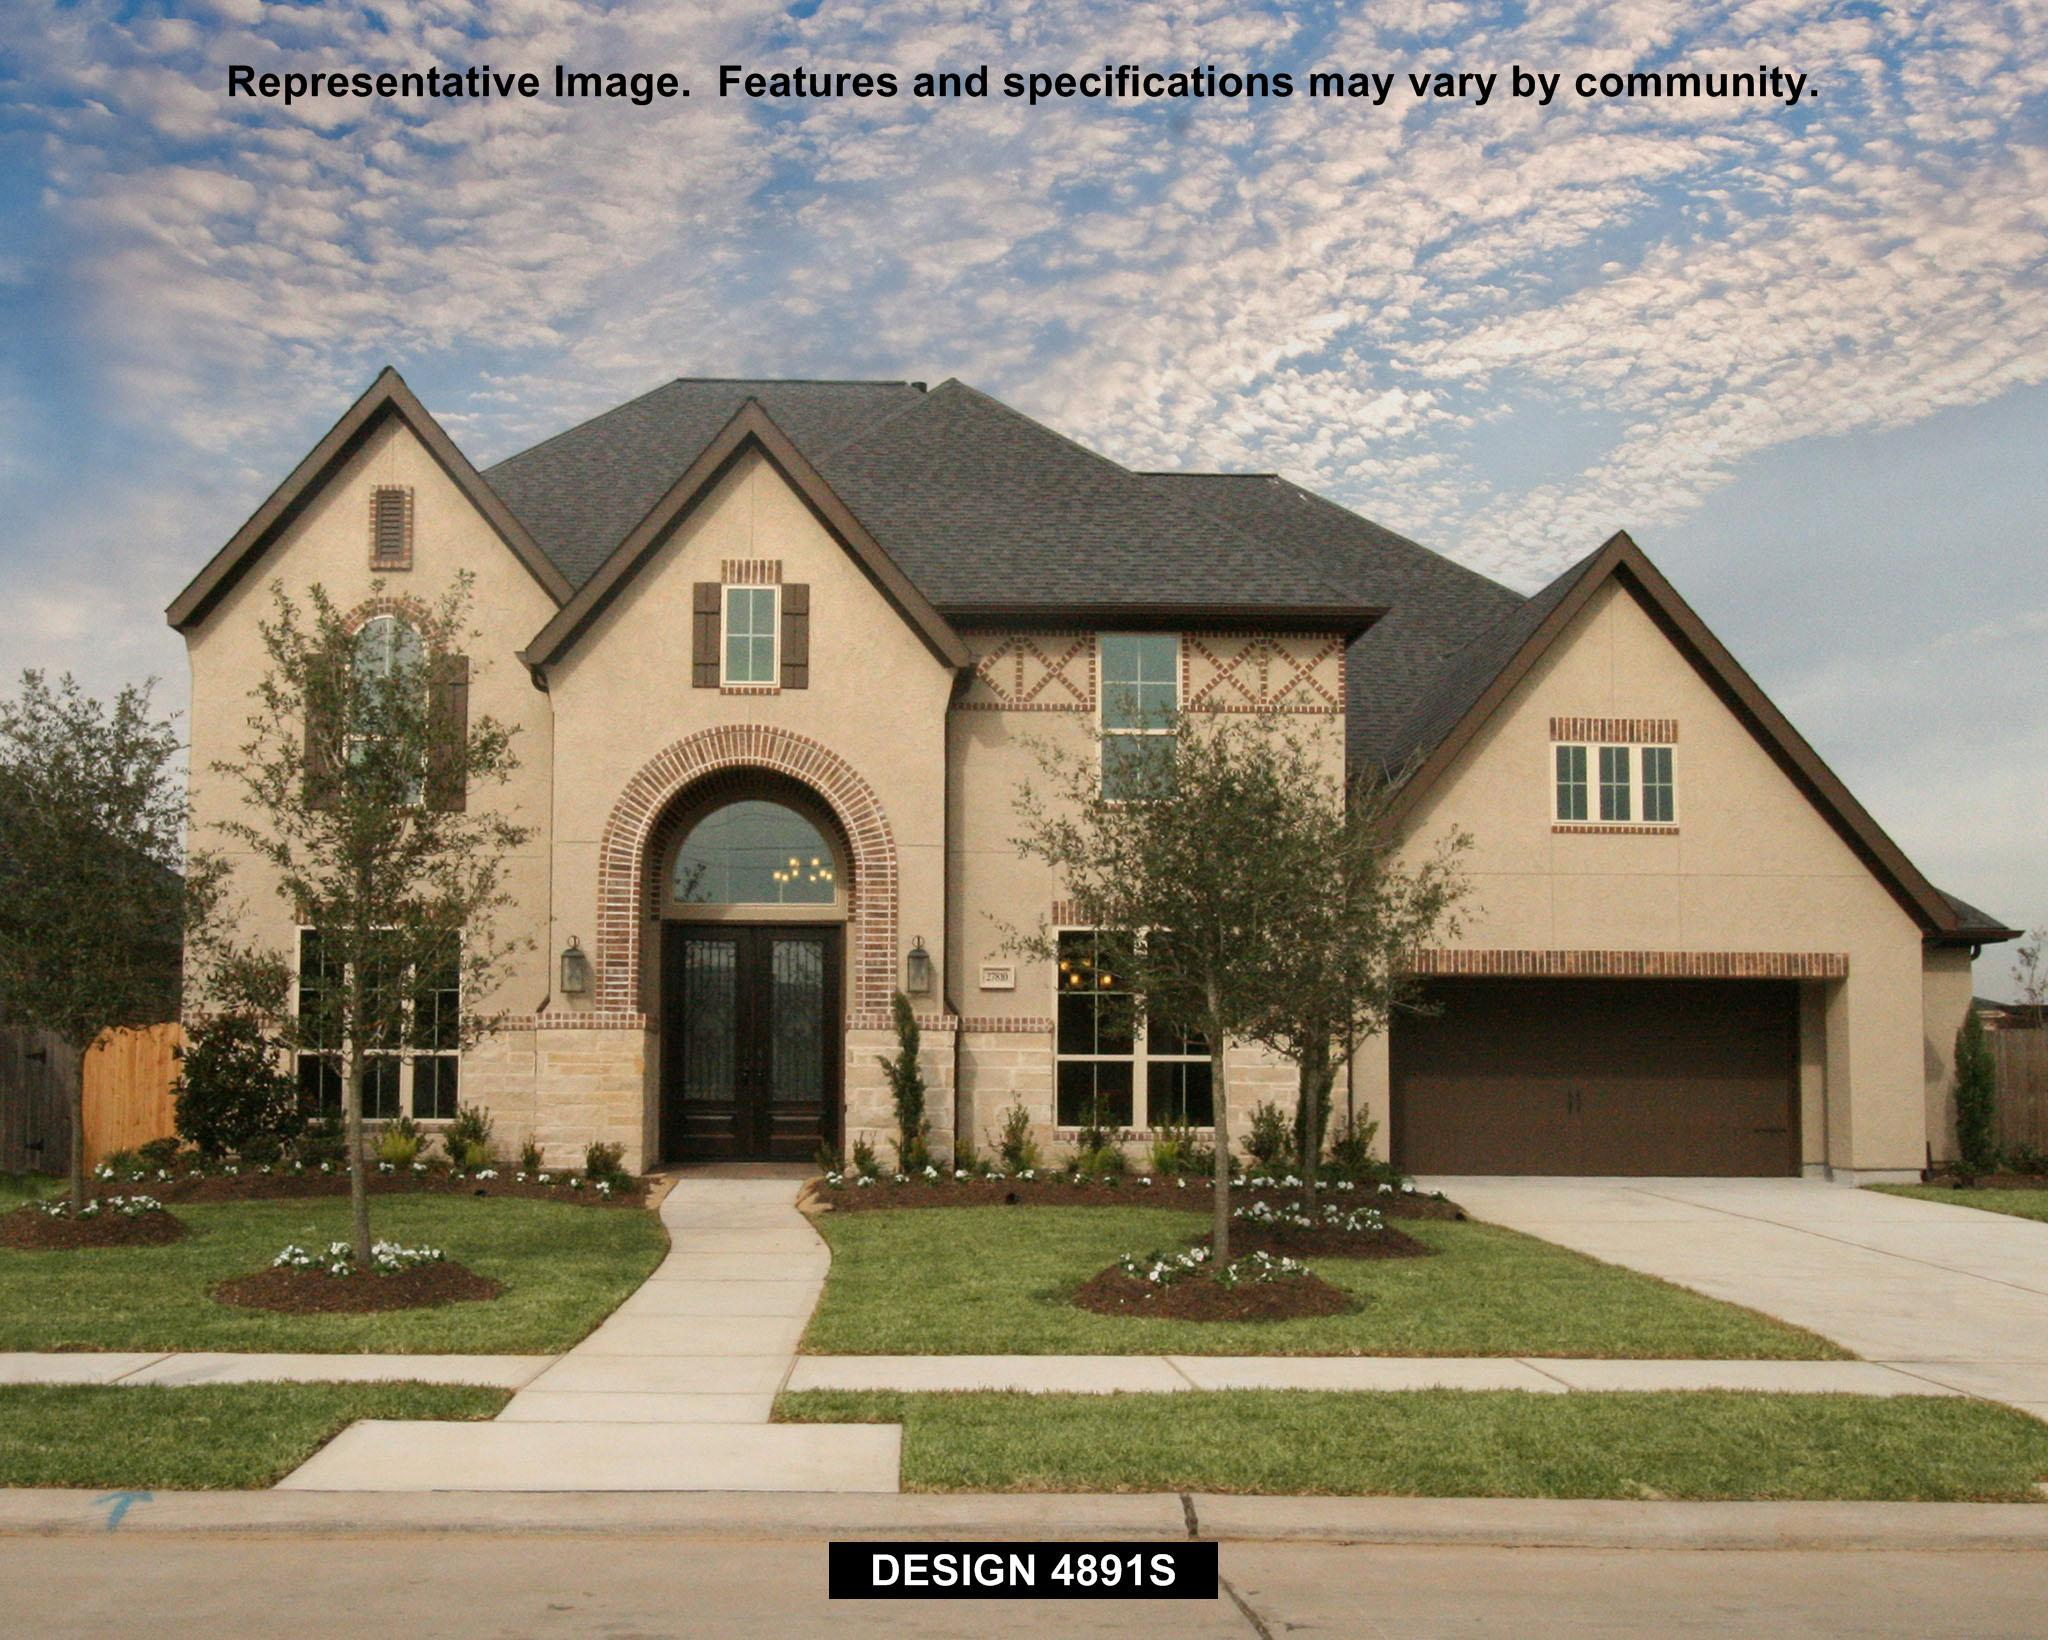 Single Family for Sale at River Valley 70' - 4891s 7986 Cibolo View Fair Oaks Ranch, Texas 78015 United States